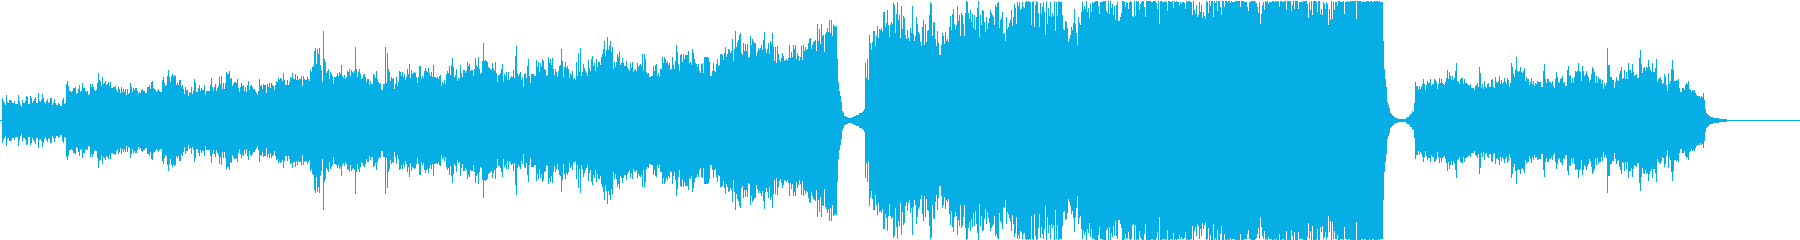 Epic, cinematic, heroic's reproduced waveform